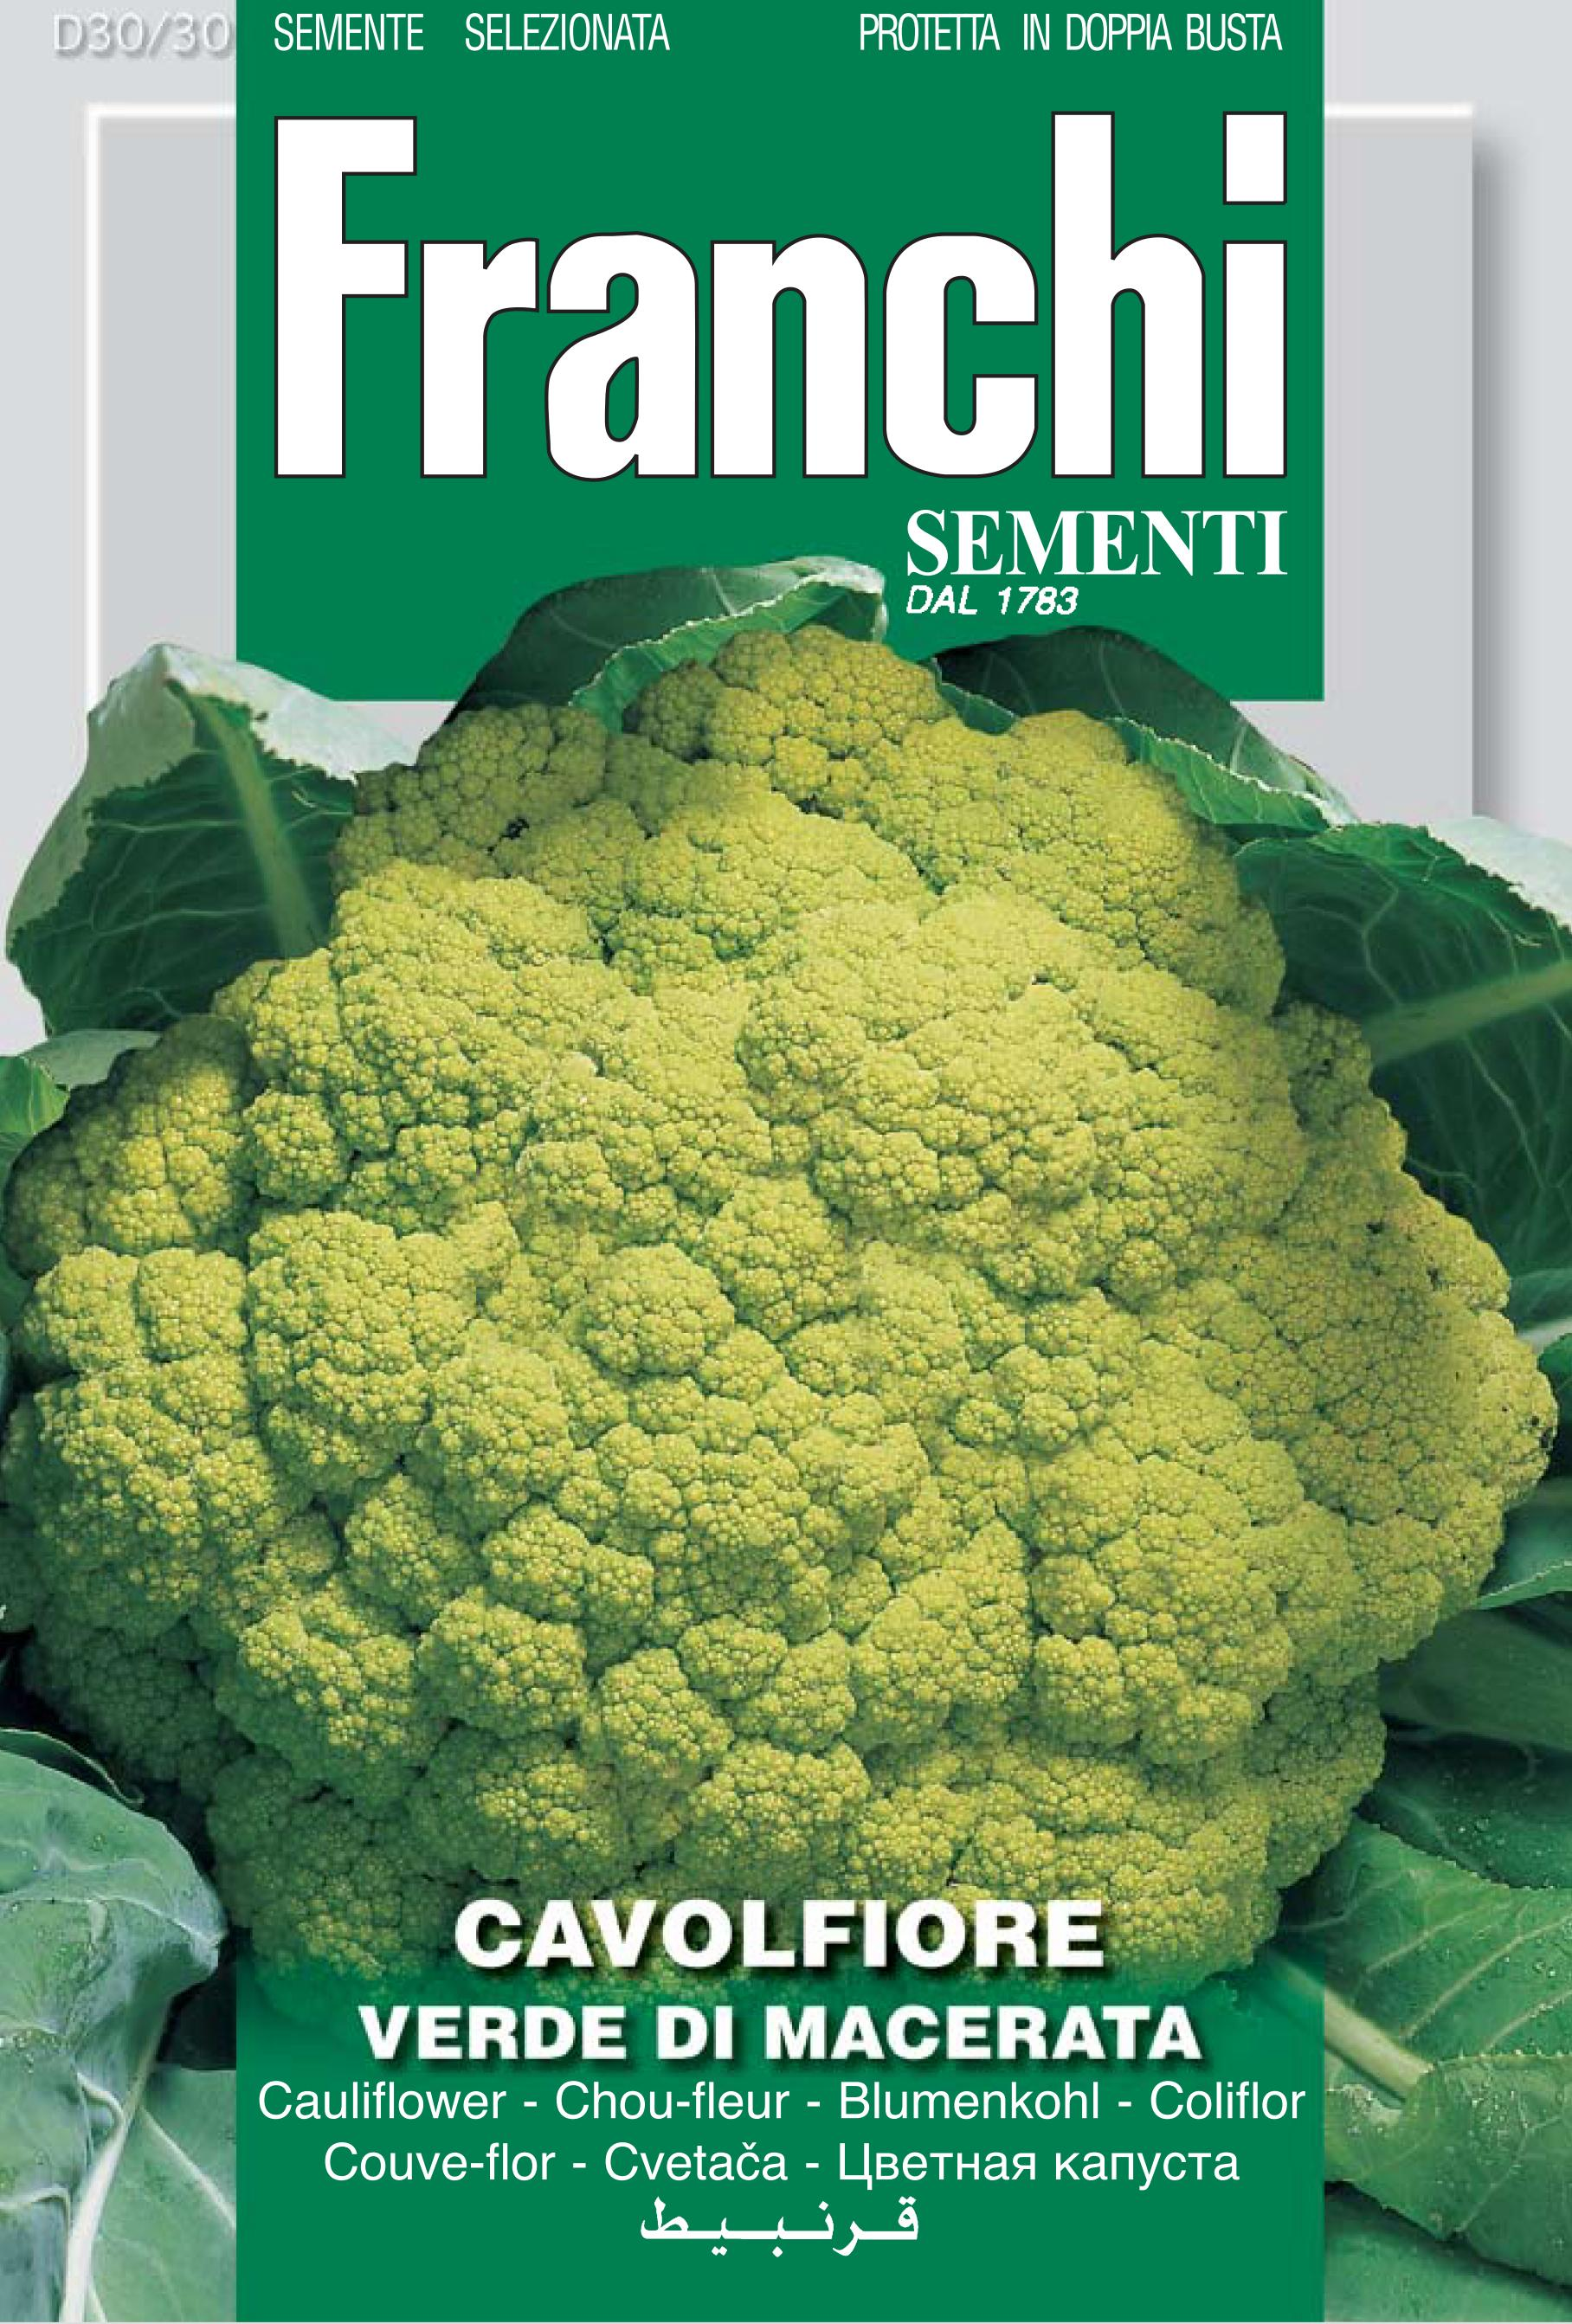 Cauliflower of Macerata AKA Cimone